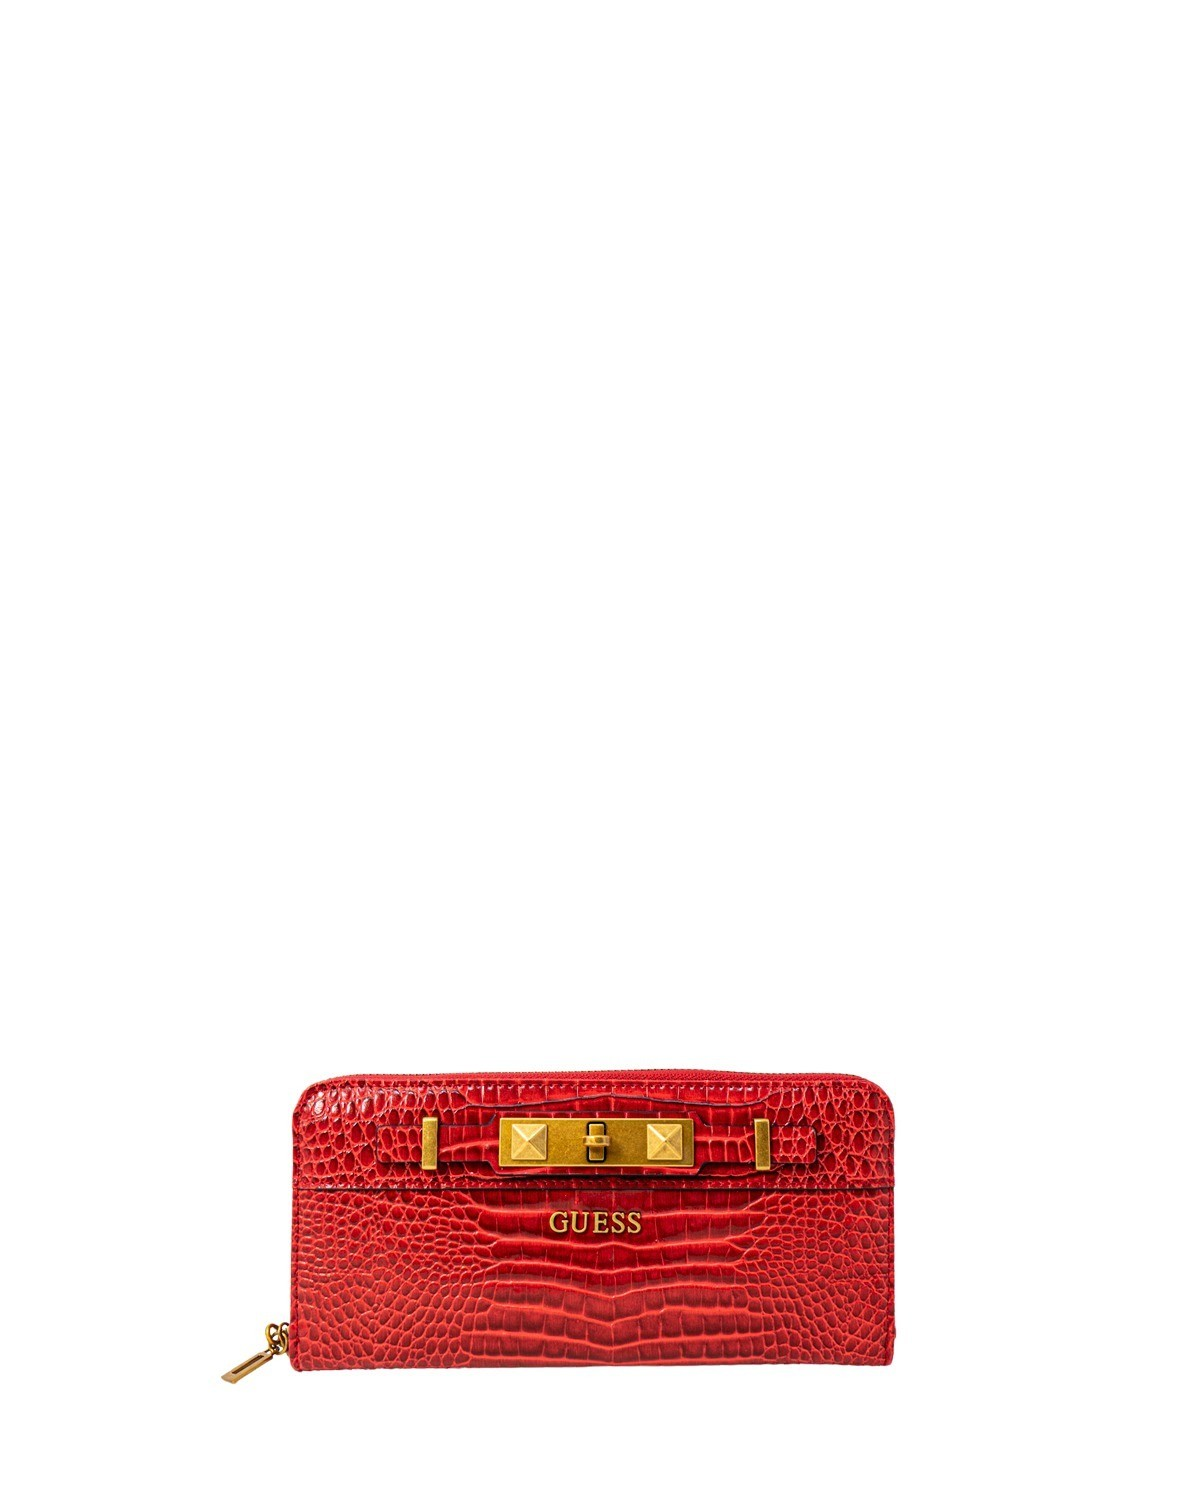 Guess Women's Wallet Various Colours 305880 - red UNICA